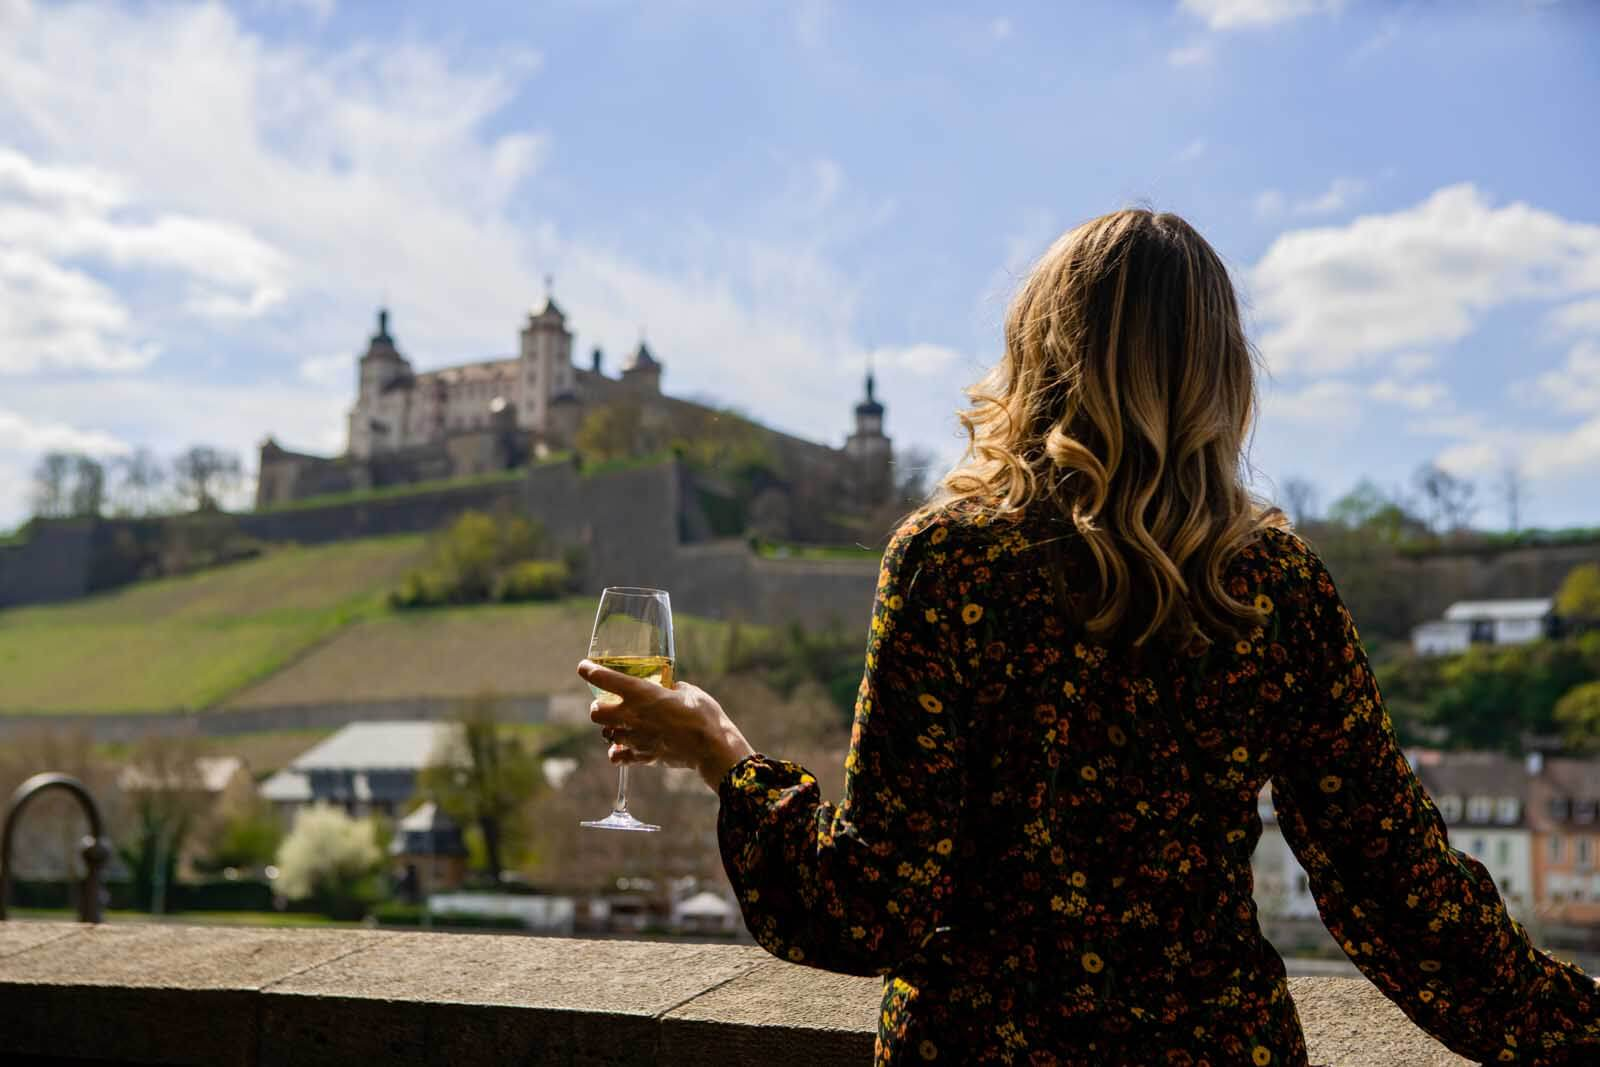 Megan enjoying a glass of wine on the old main bridge in Würzburg Germany